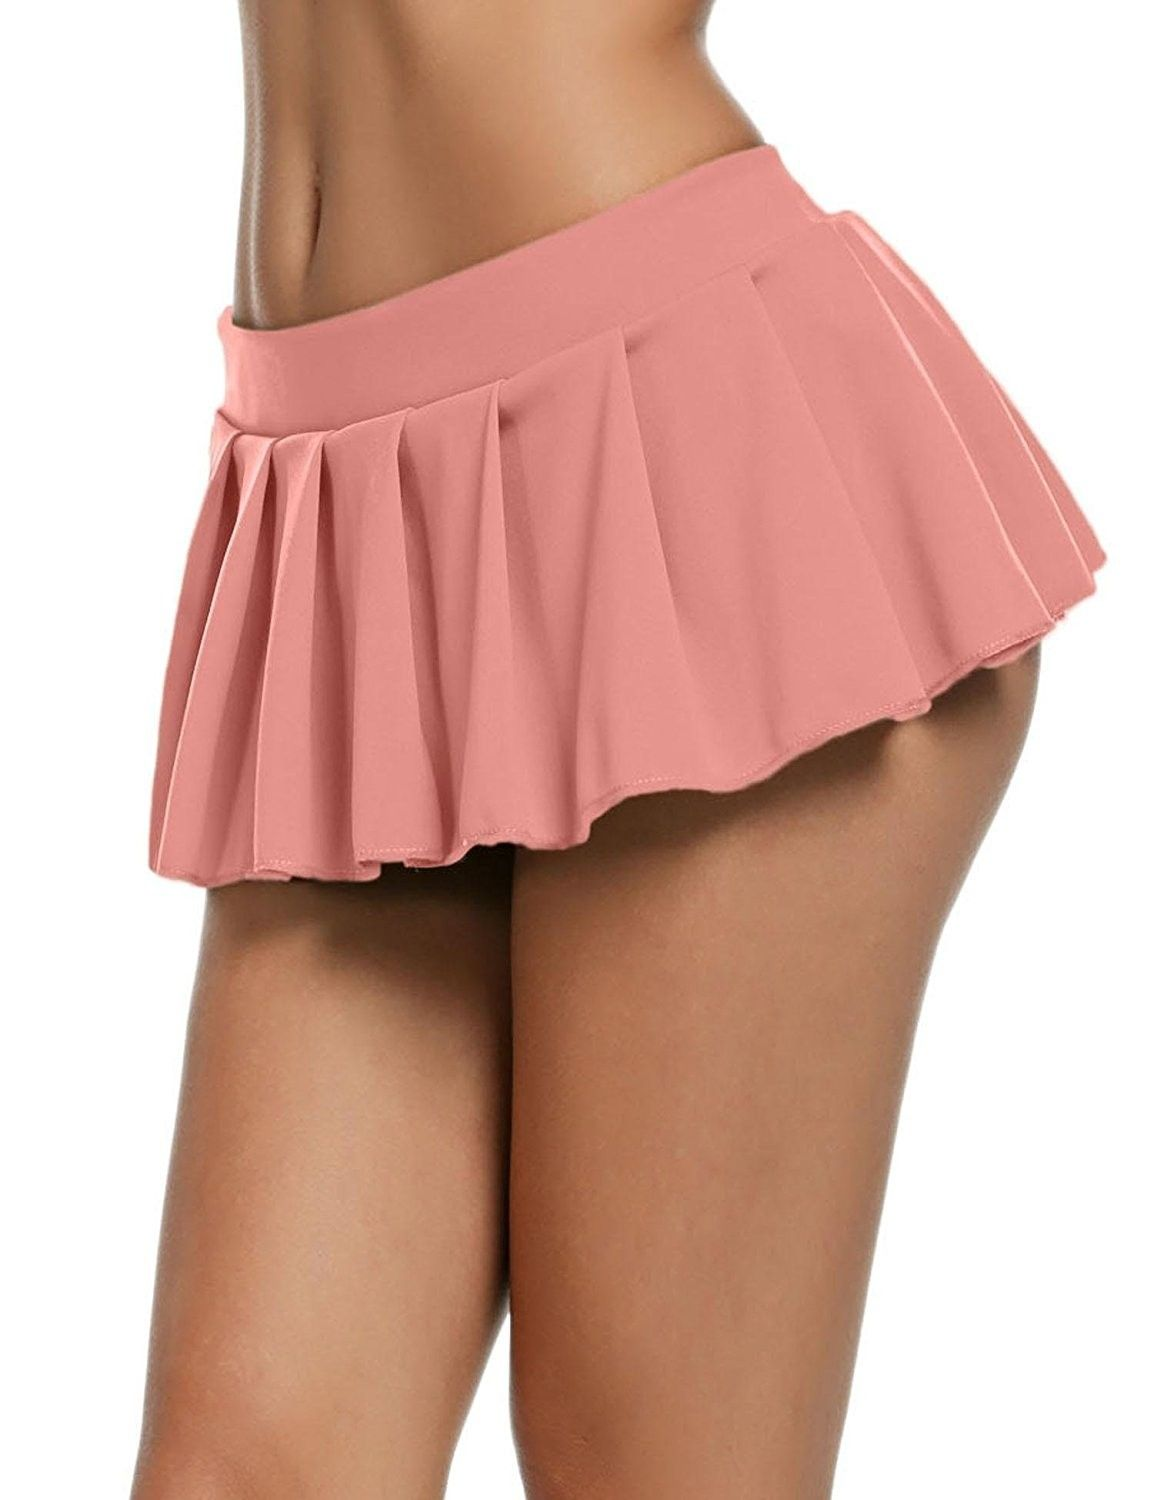 e8e463cdb79e3 Women Schoolgirl Pleated Sexy Mini Cosplay Skirt Ruffle Lingerie ...